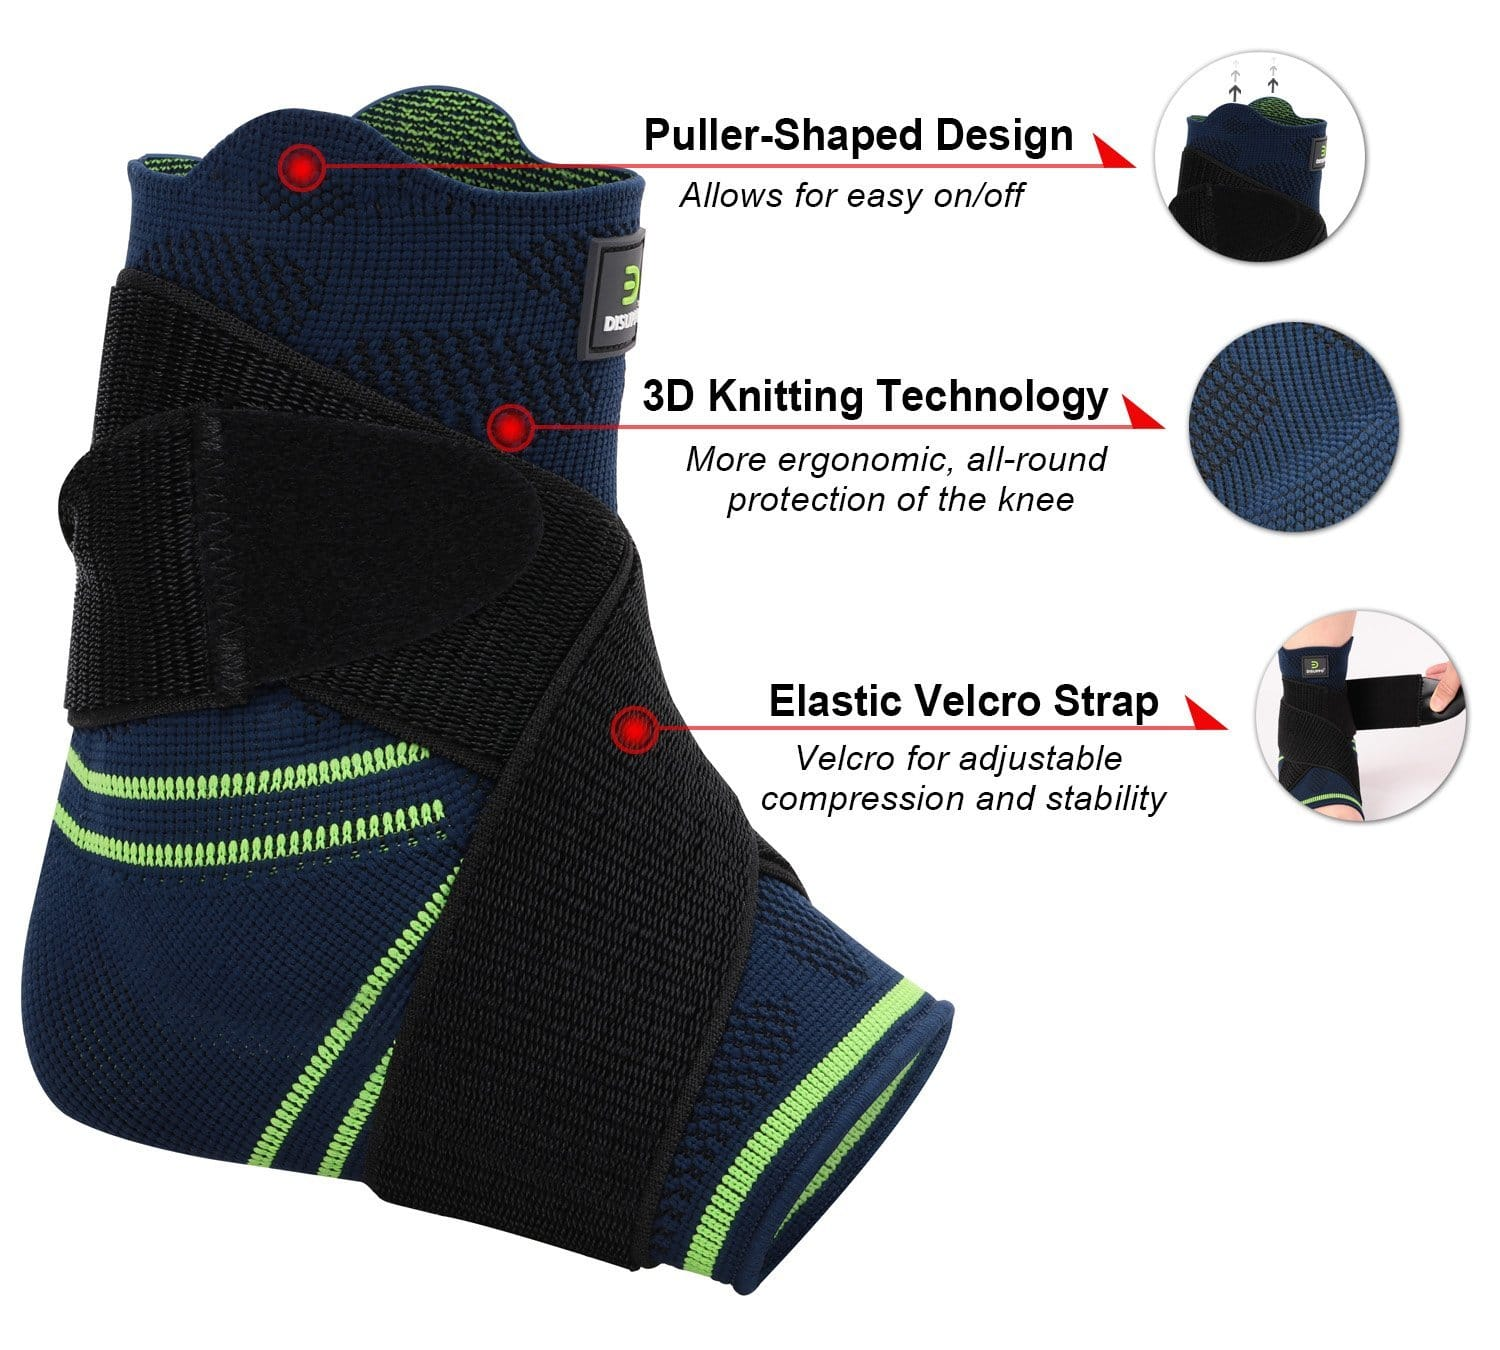 Ankle brace with adjustable compression and gel padding $6.50 prime shipping at amazon